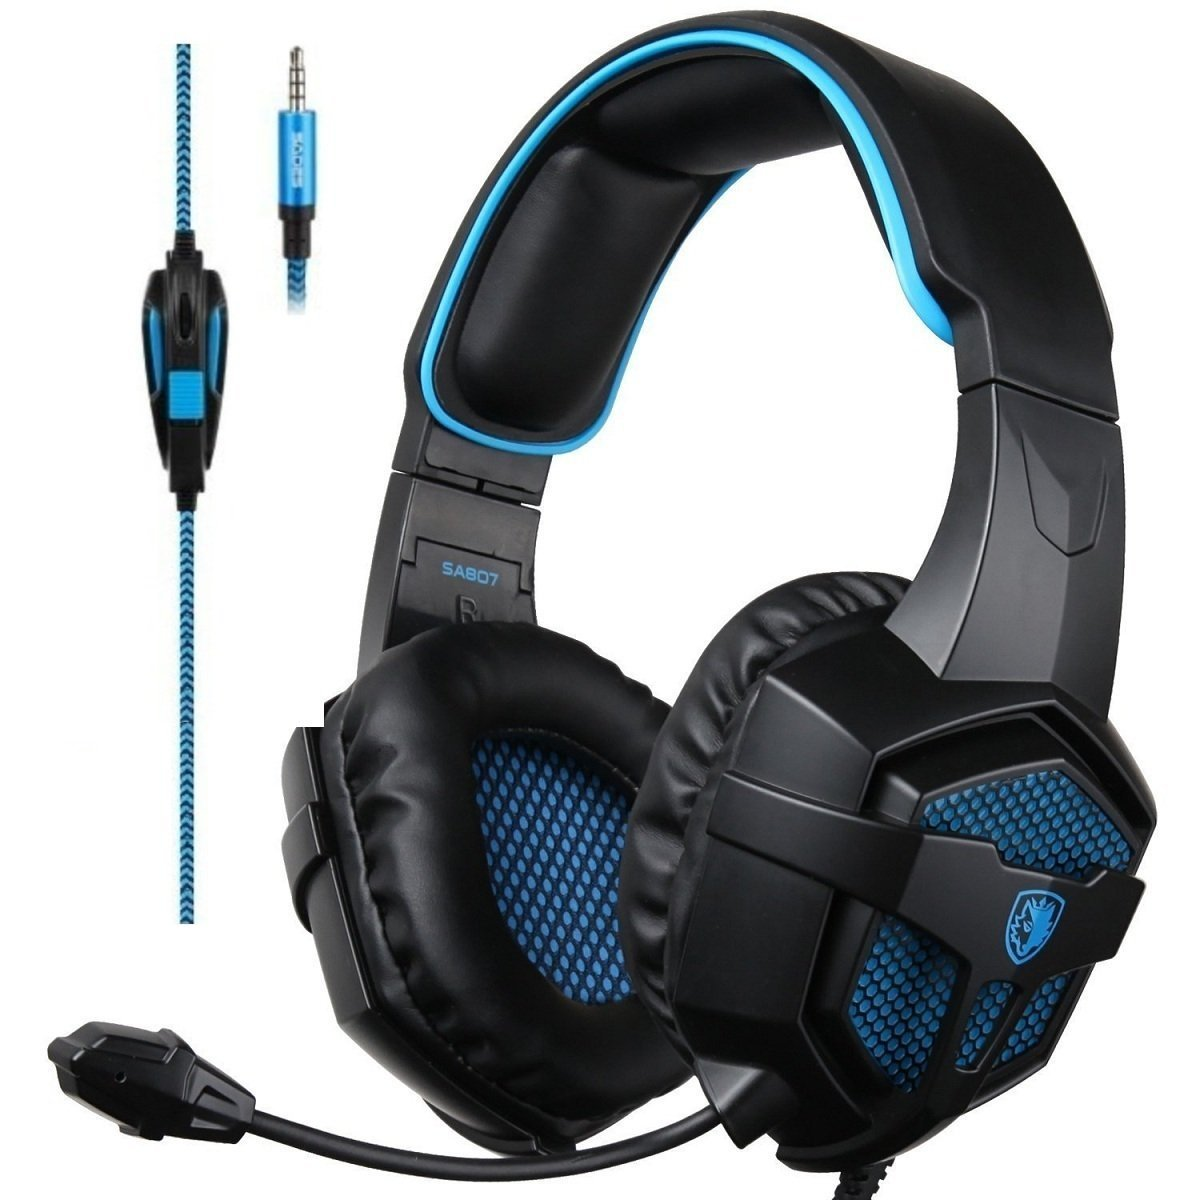 Sades sades807 Gaming Headsets Headphones For New Xbox one PS4 PC Laptop Mac Mobile, Black & Blue